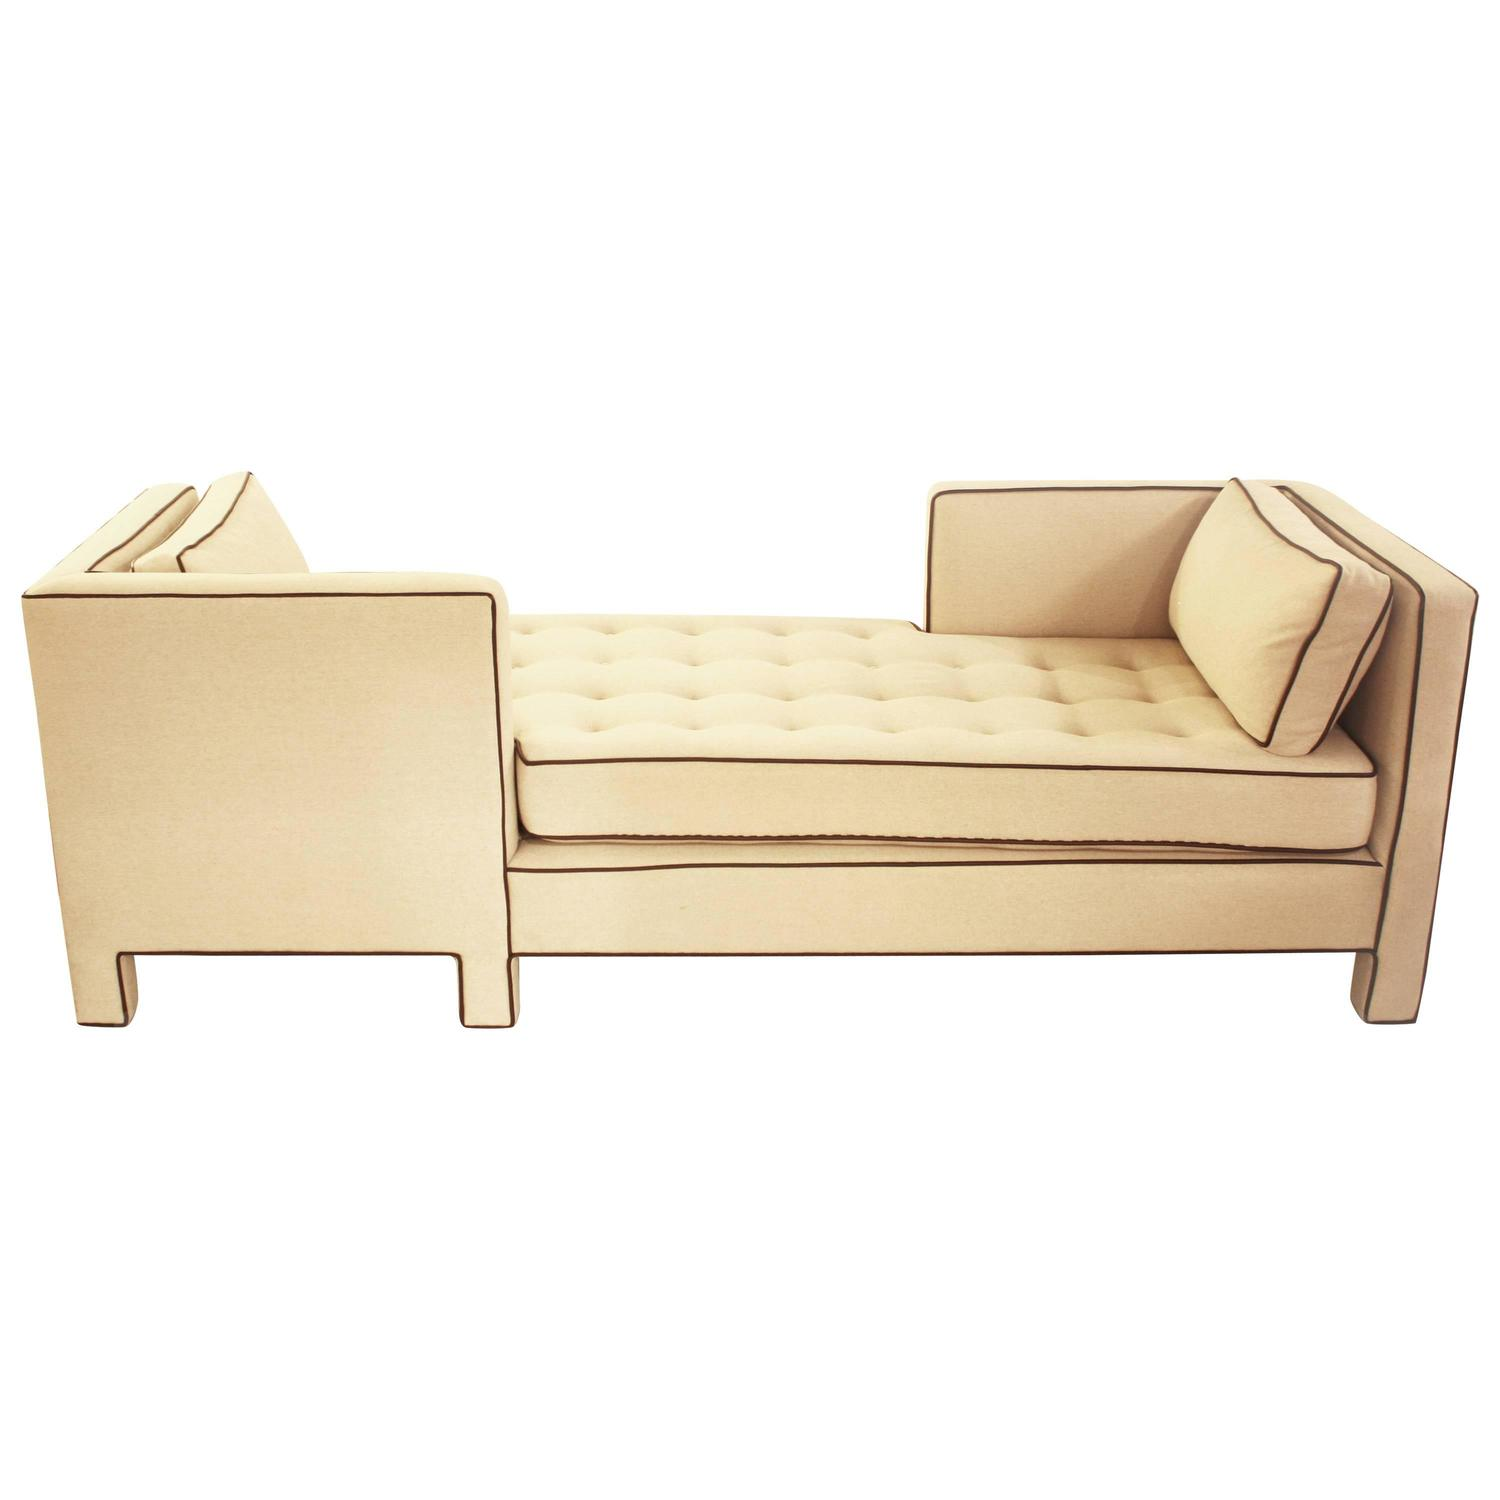 1960s Tete A Tete Sofa Attributed To Edward Wormley For Dunbar For Sale At 1stdibs